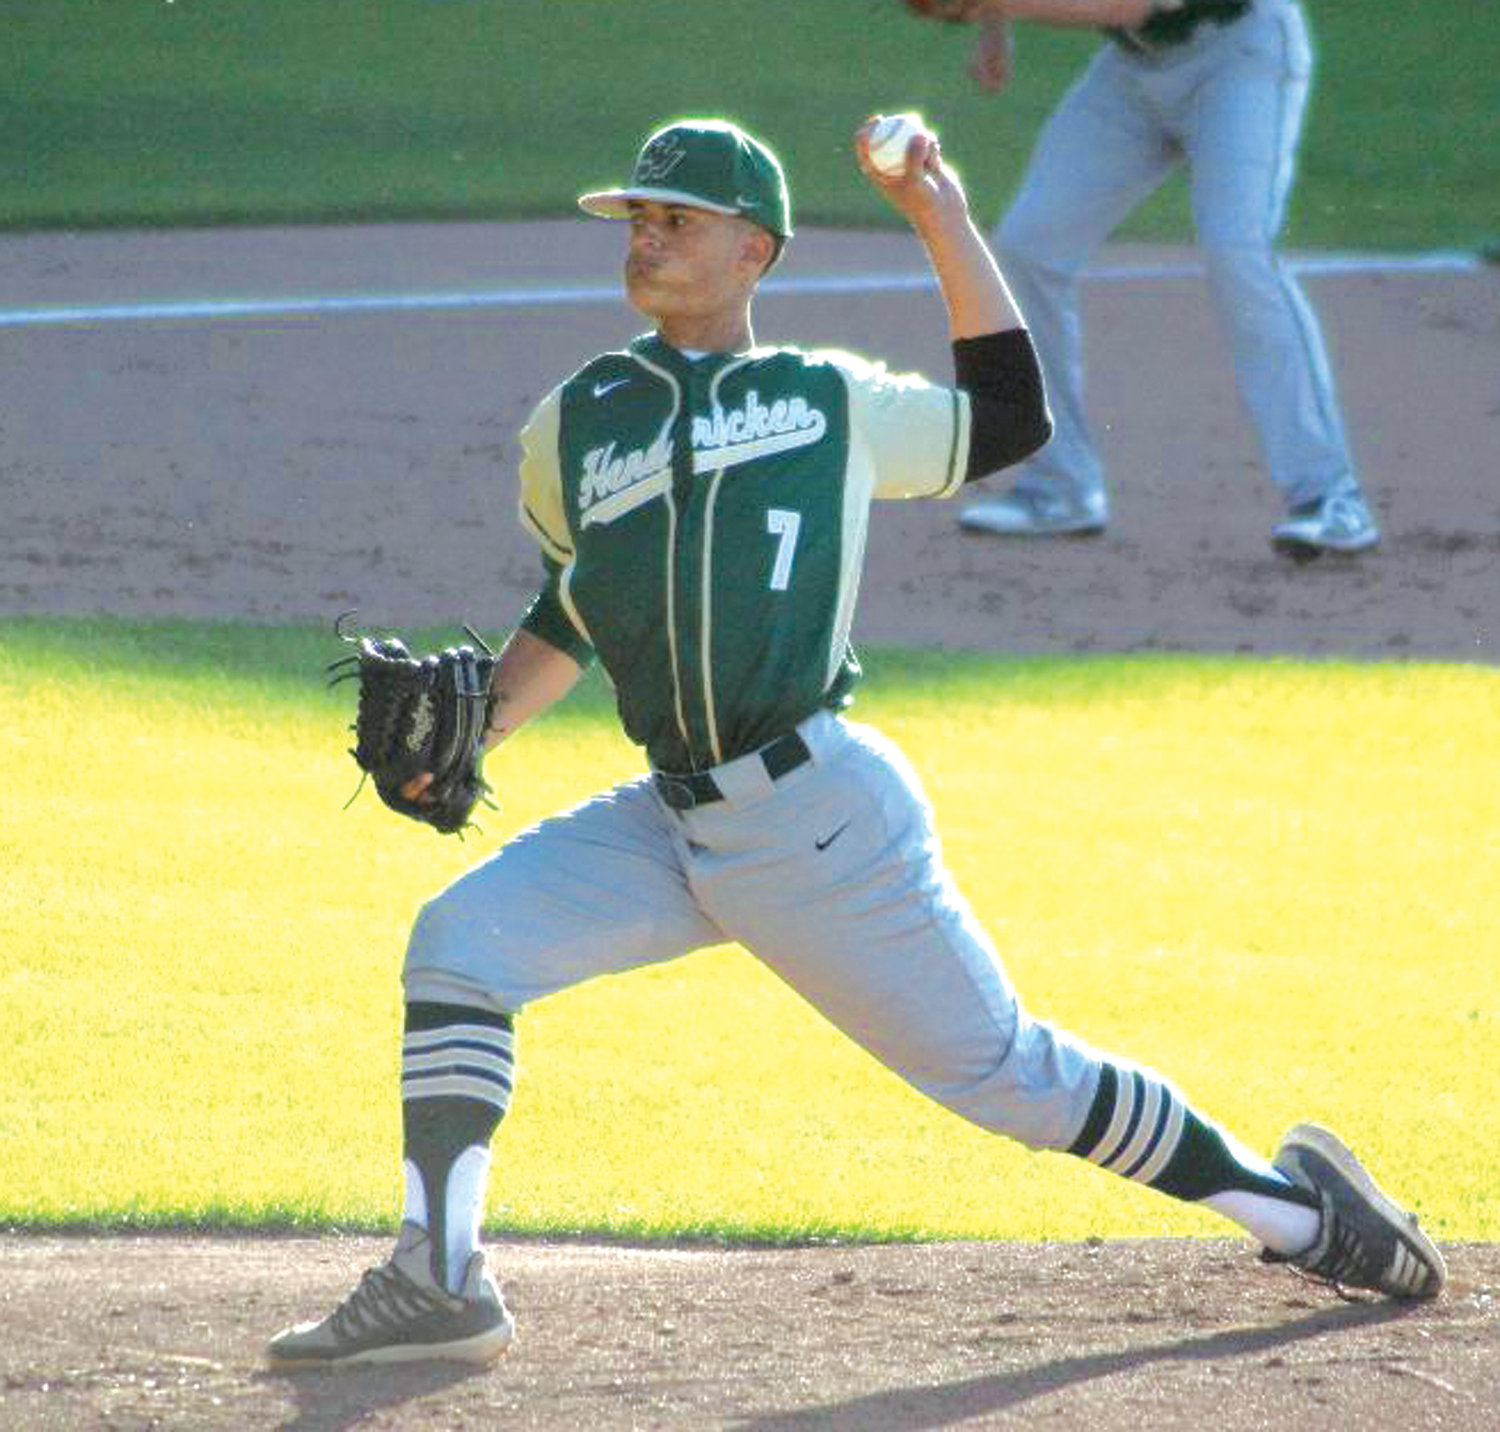 ON THE HILL: Bishop Hendricken starting pitcher Randy Reyes deals against La Salle.